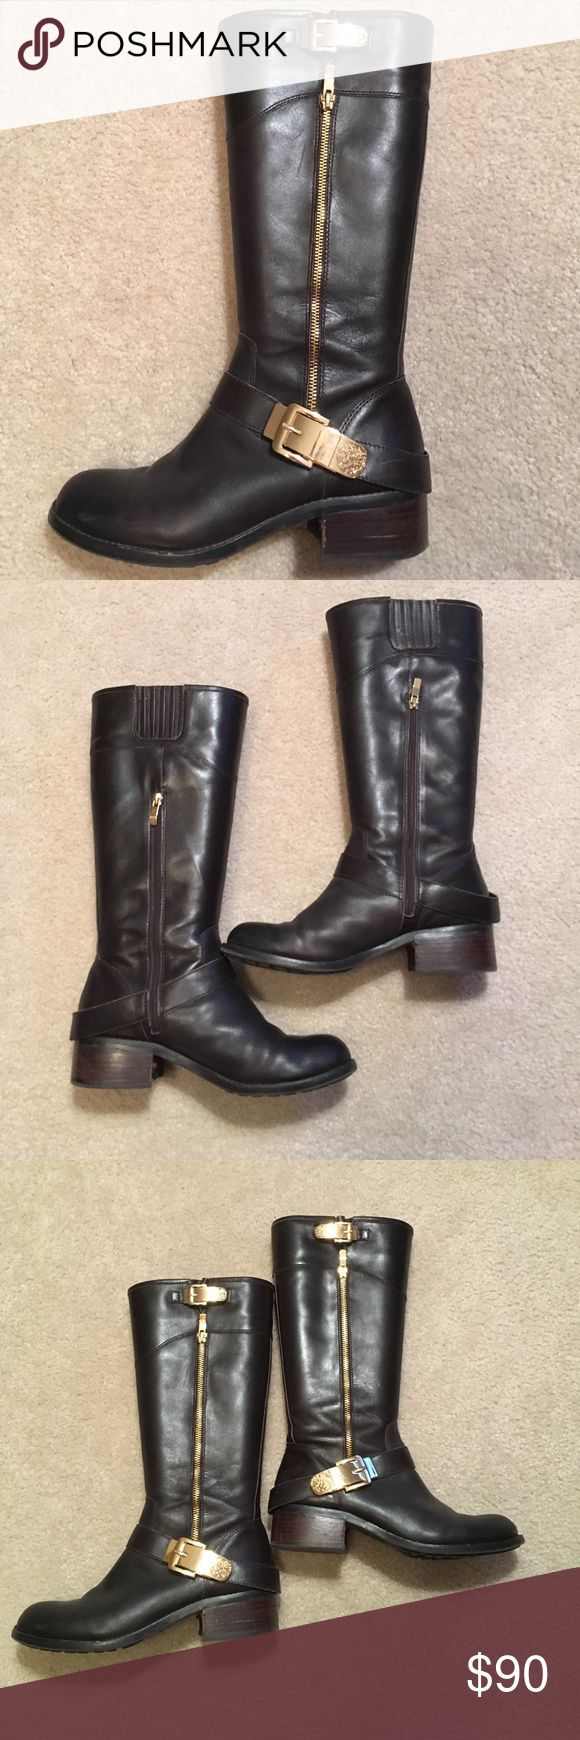 Vince Camuto Brown Leather Riding Boots Chic dark brown leather riding boots with gold buckles and zipper down side. Side zipper on inside of boot with elastic around calf. Size 9. Vince Camuto Shoes Heeled Boots